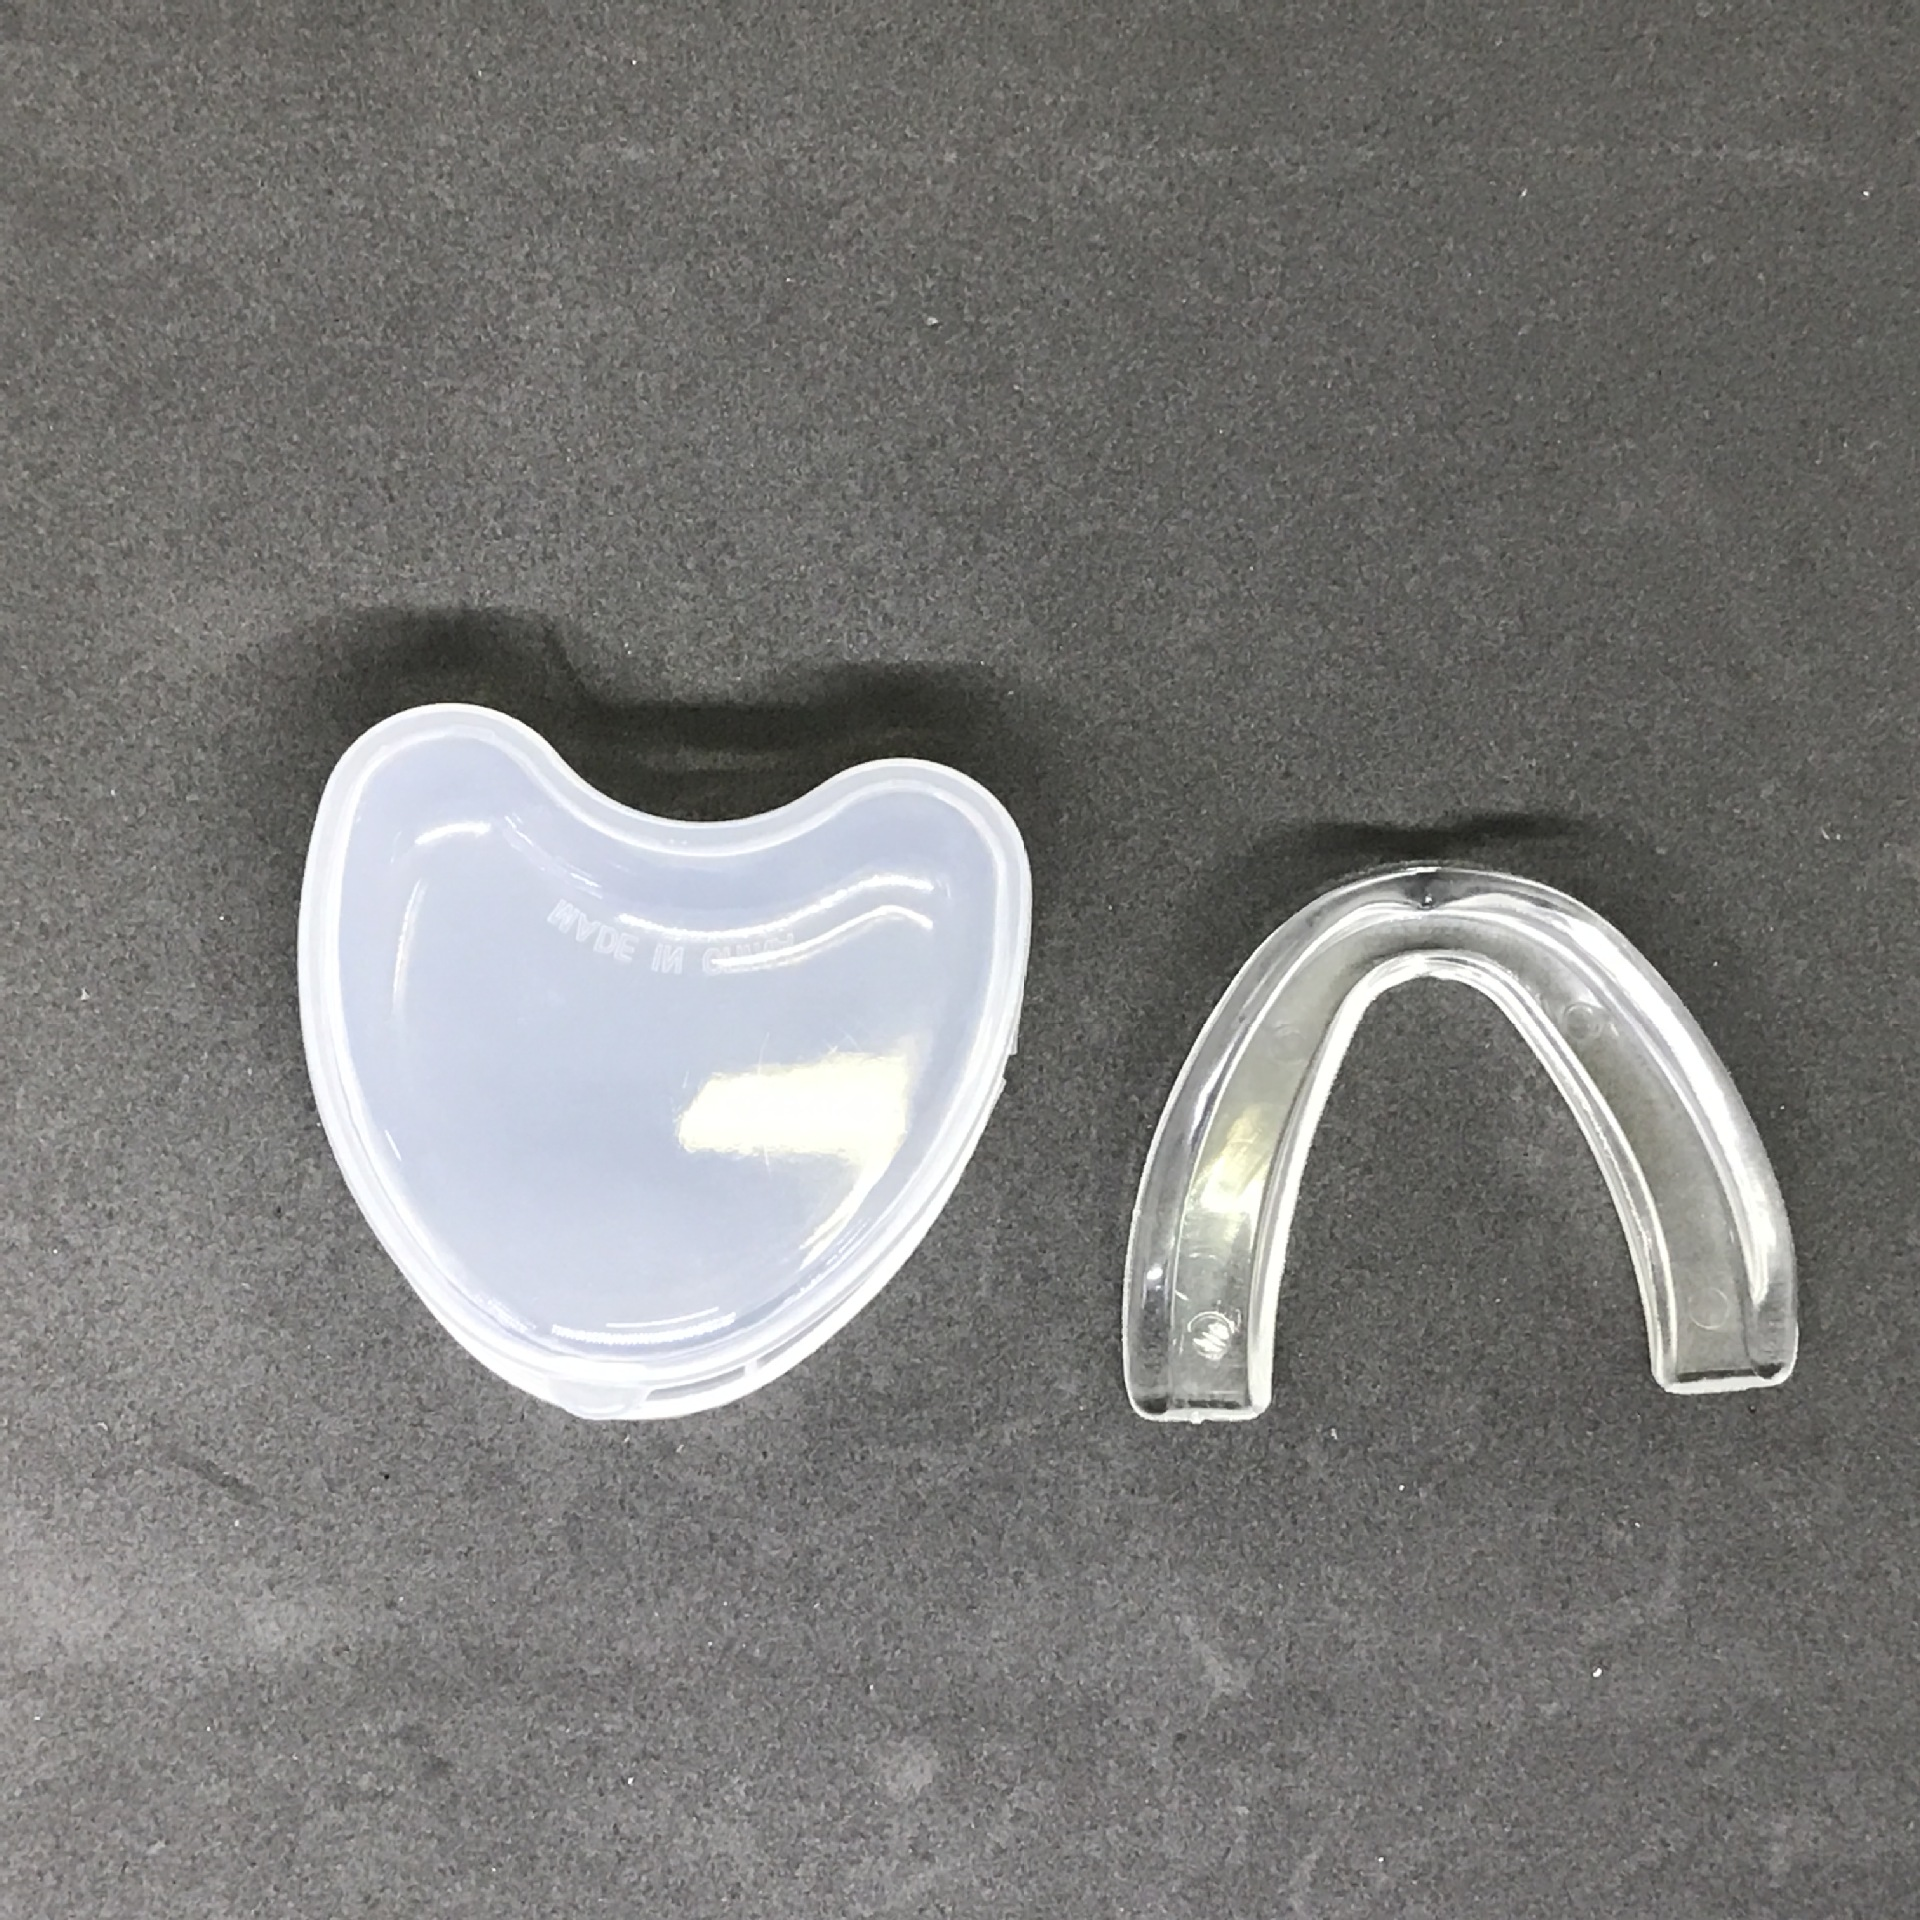 Sports Mouth Guard with Carrying Case ESG12858